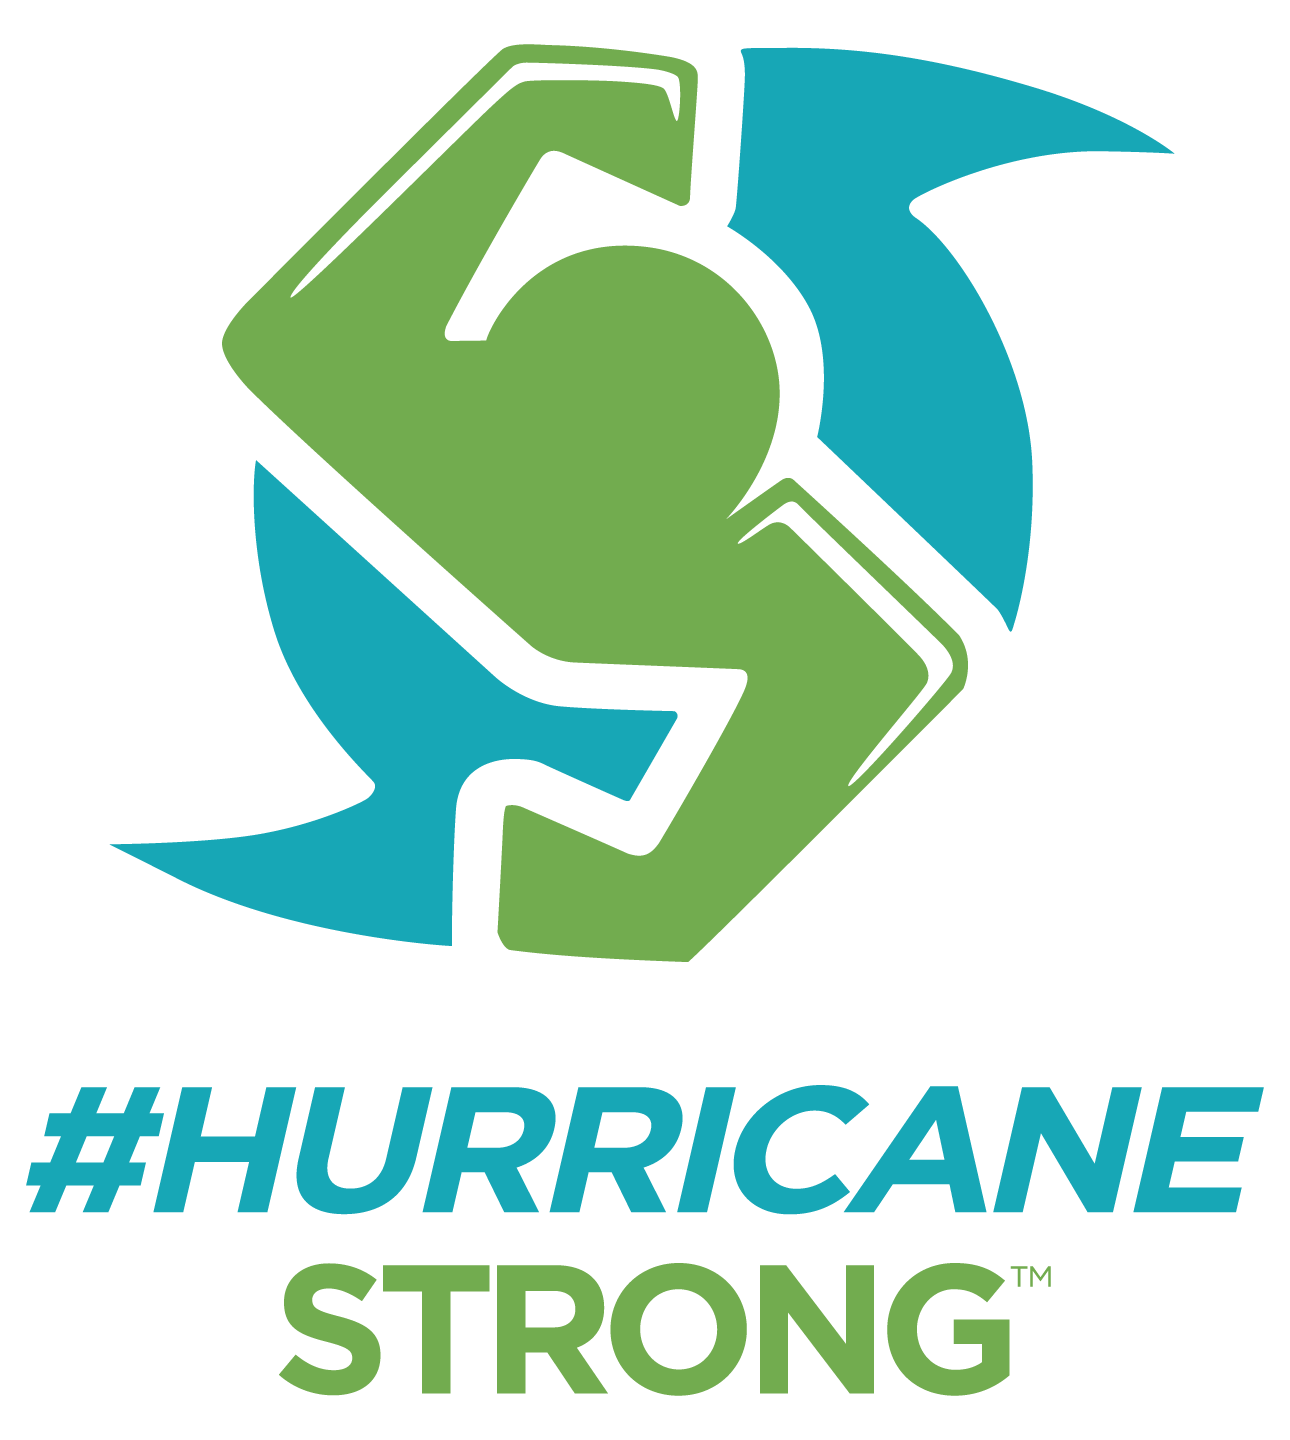 Hurricane Strong